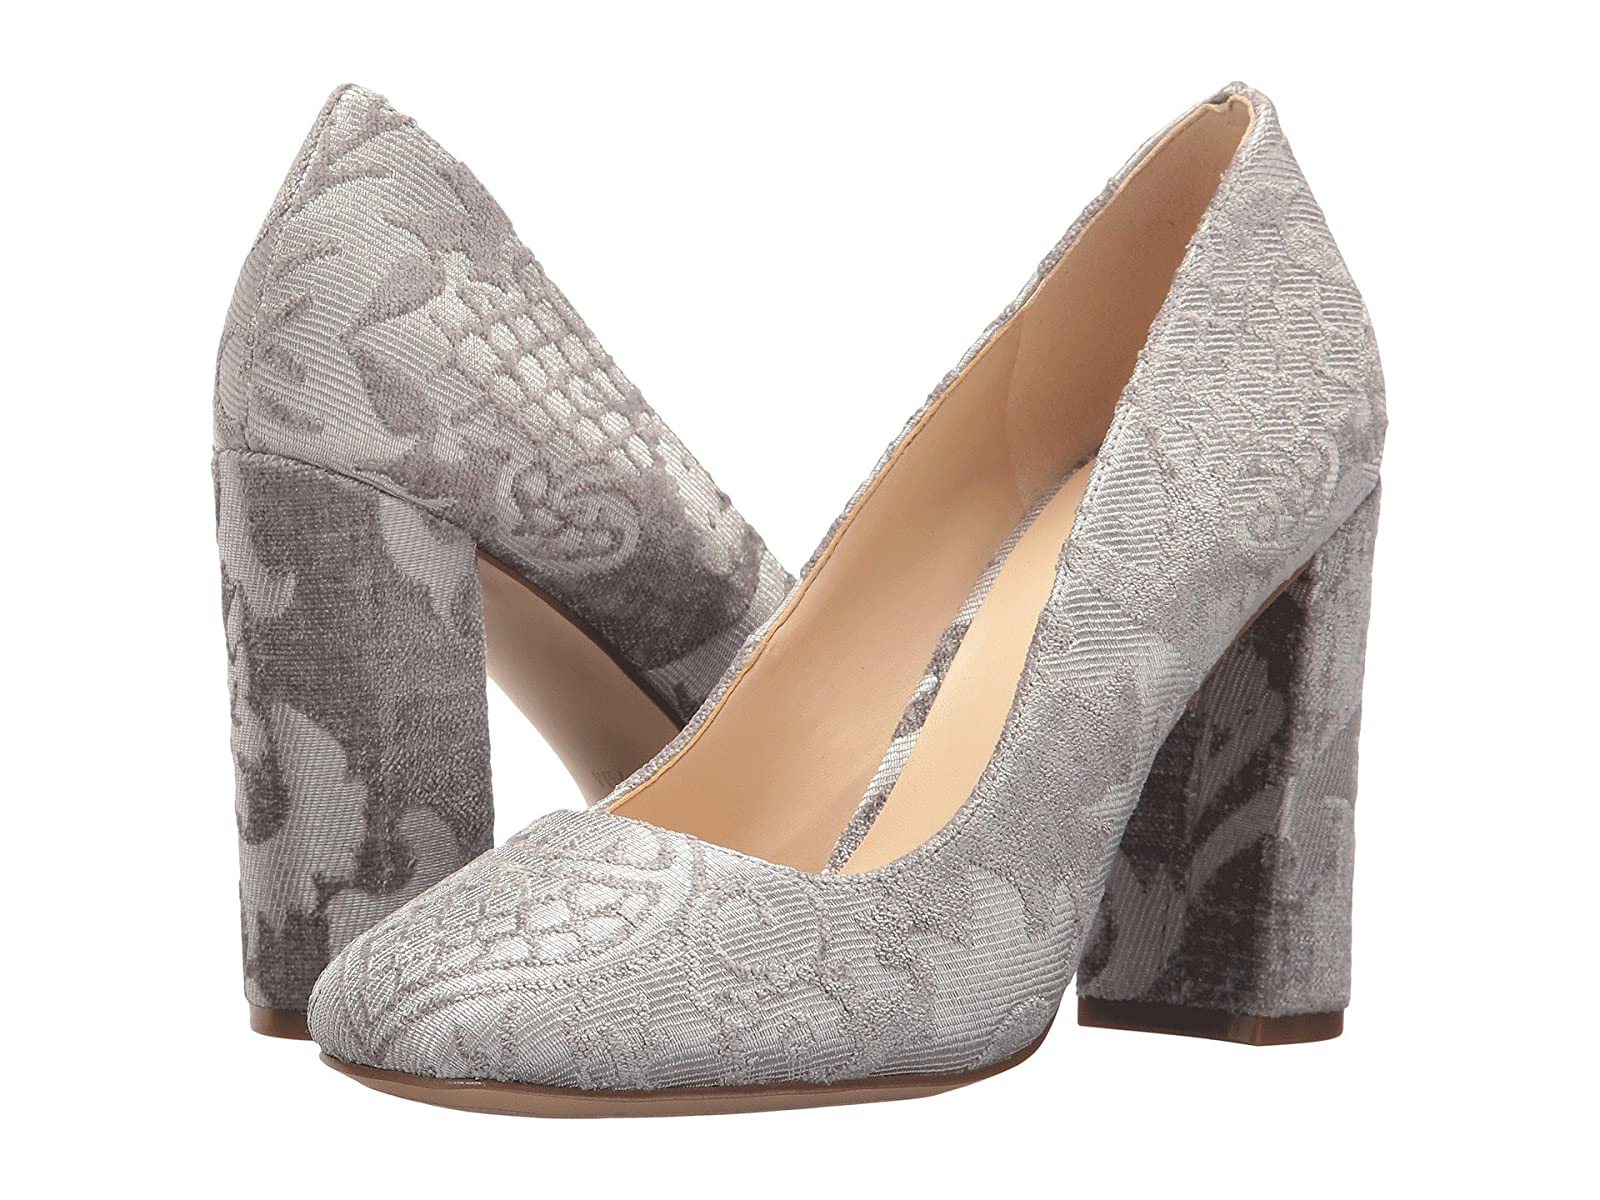 Nine West DentonCheap and distinctive eye-catching shoes